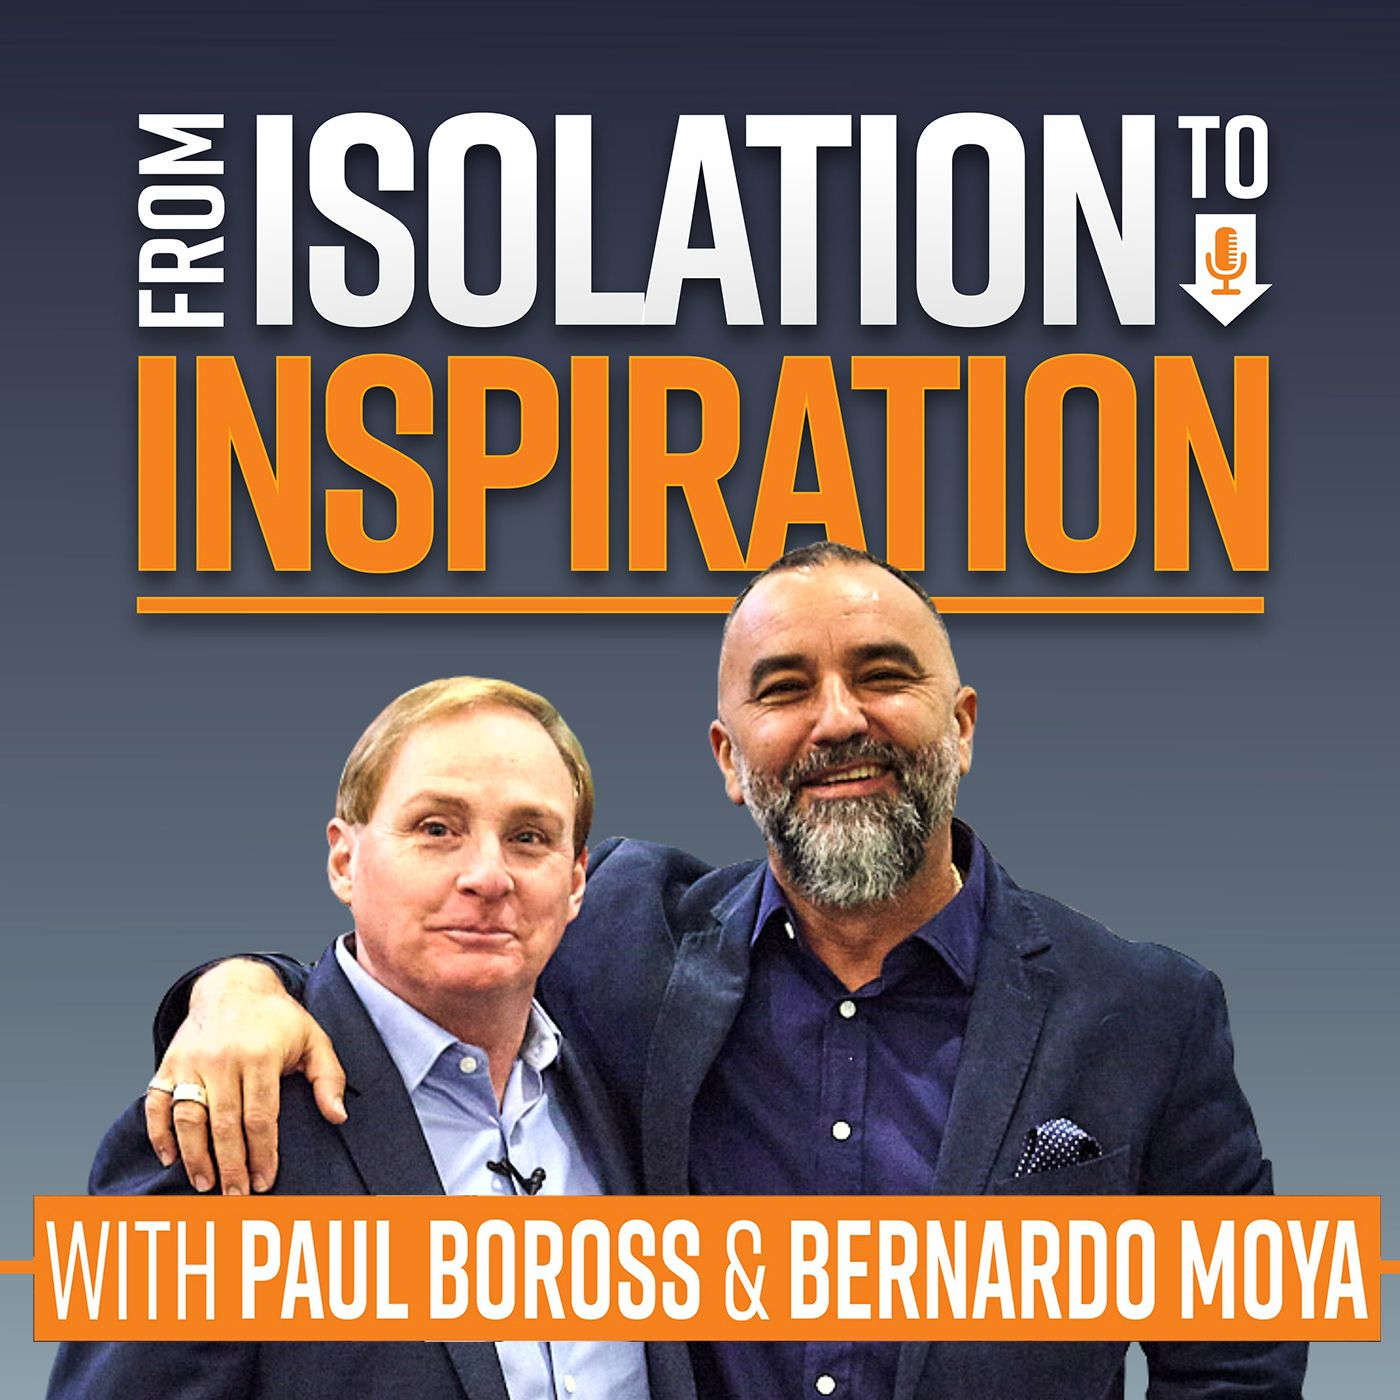 From Isolation to Inspiration with Paul Boross and Bernardo Moya